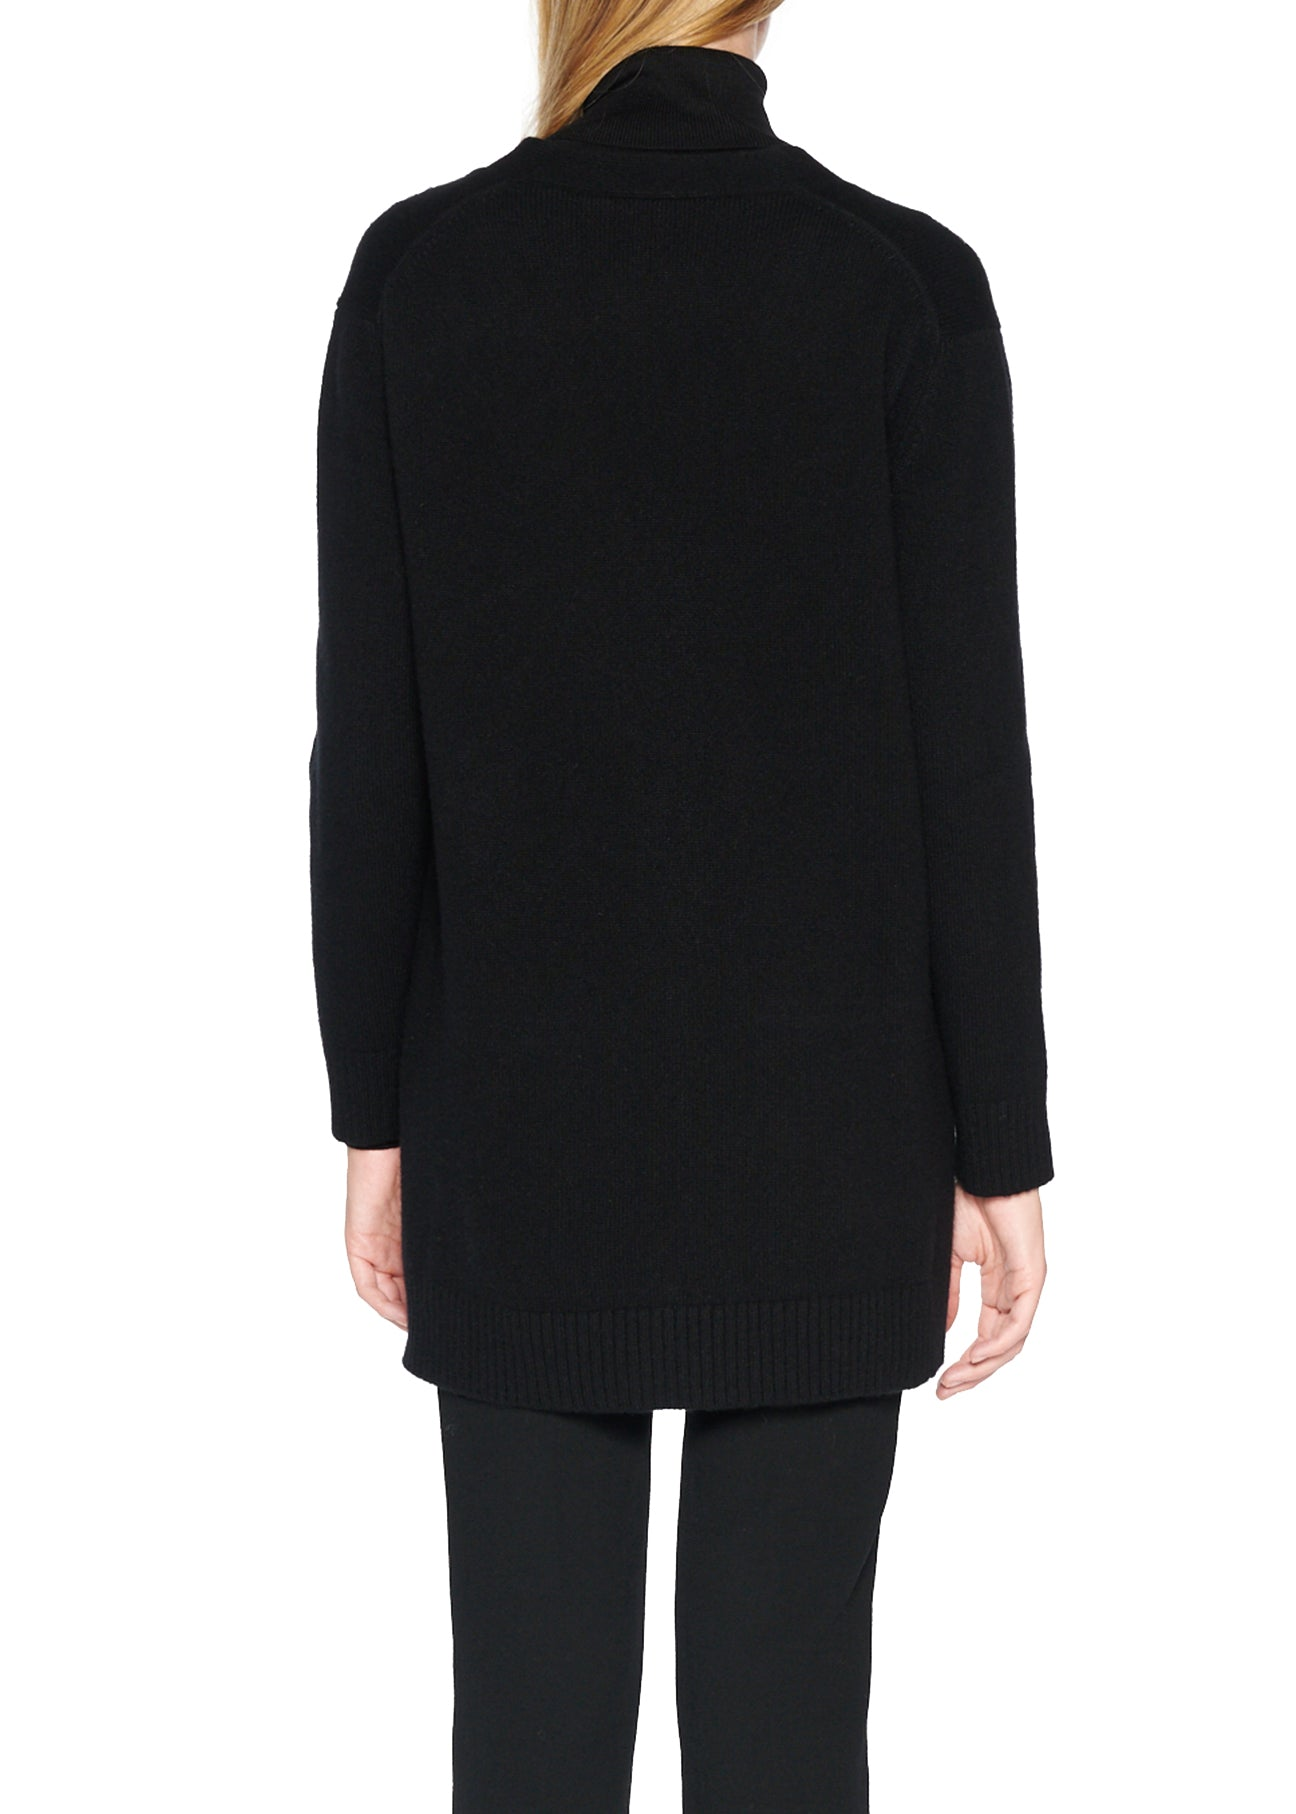 'EYE TEST' CASHMERE CARDIGAN - Women's Knits - Libertine